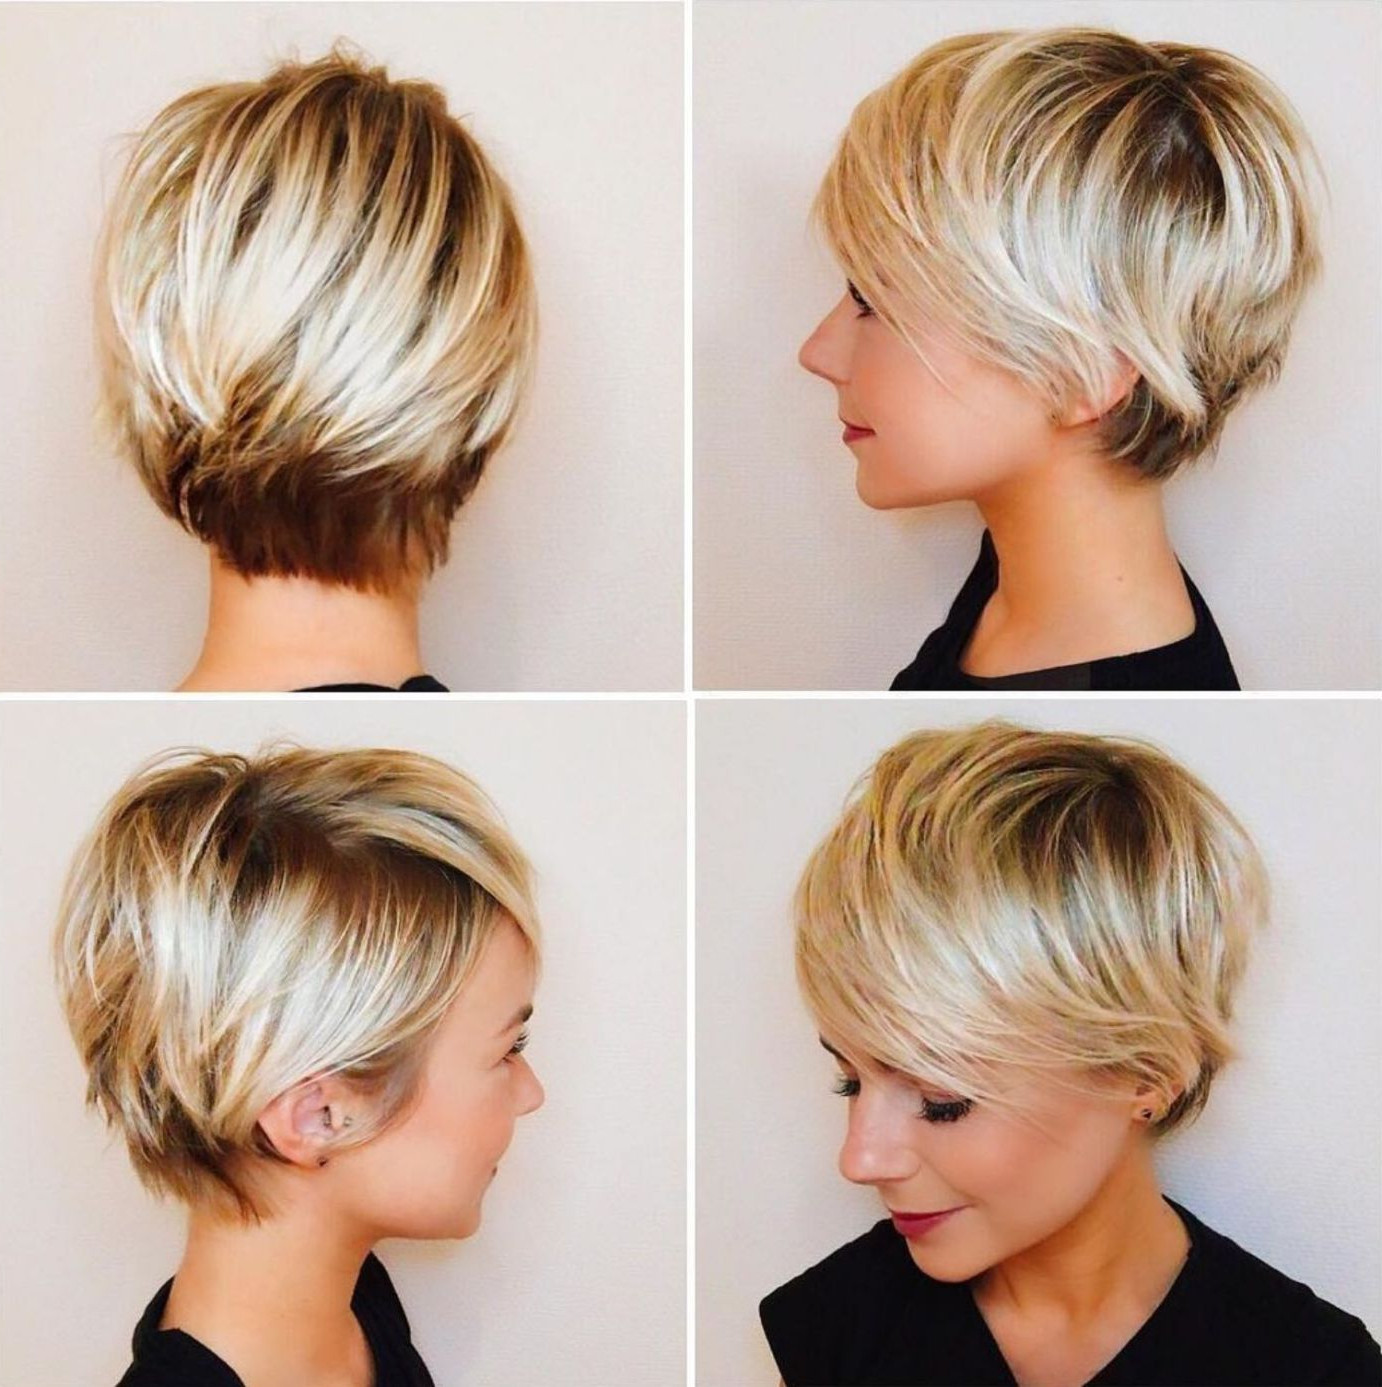 Pixie Haircuts With Bangs – 50 Terrific Tapers In 2018 | Short Hair With Regard To Bronde Balayage Pixie Haircuts With V Cut Nape (View 3 of 20)